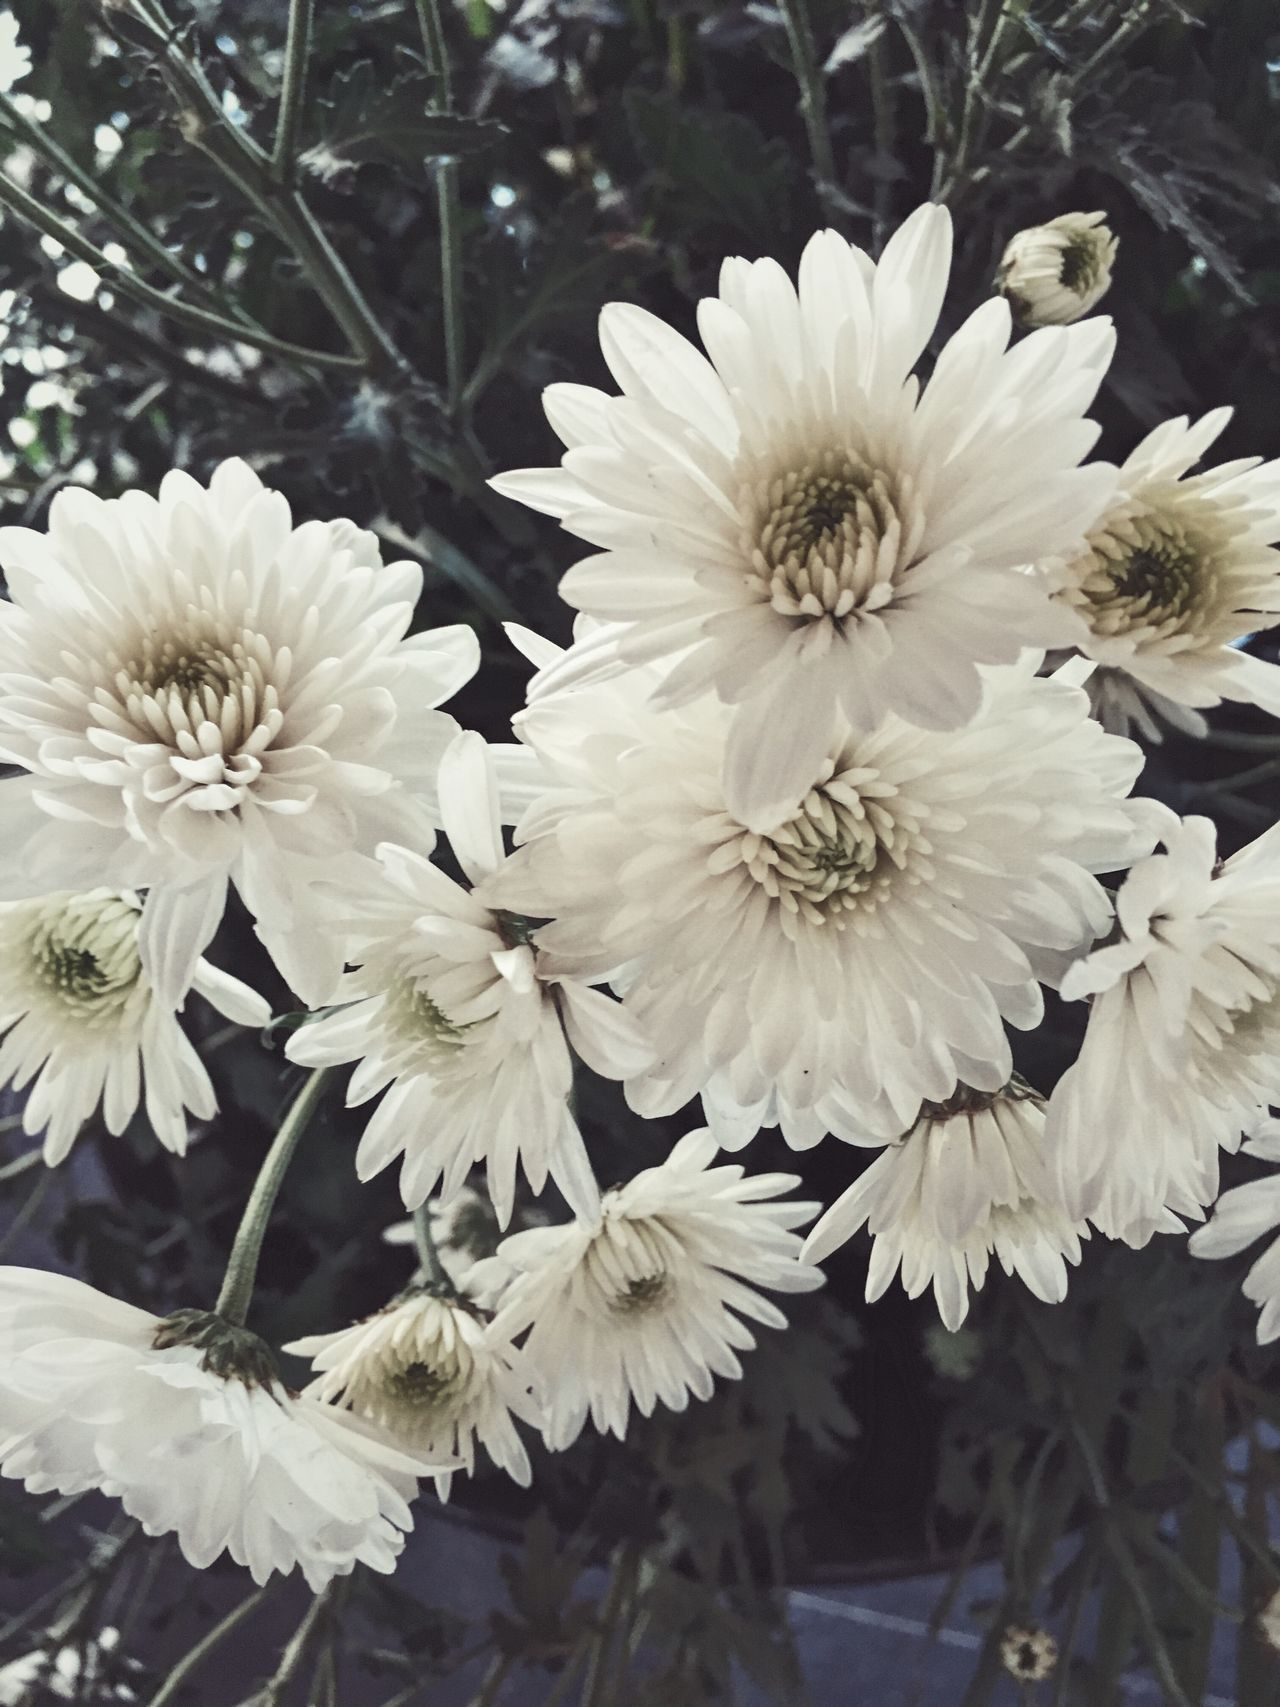 Chrysanthemum IPhone Flower White Color Growth Nature Freshness Beauty In Nature Petal Flower Head Fragility Close-up No People Blooming Outdoors Day